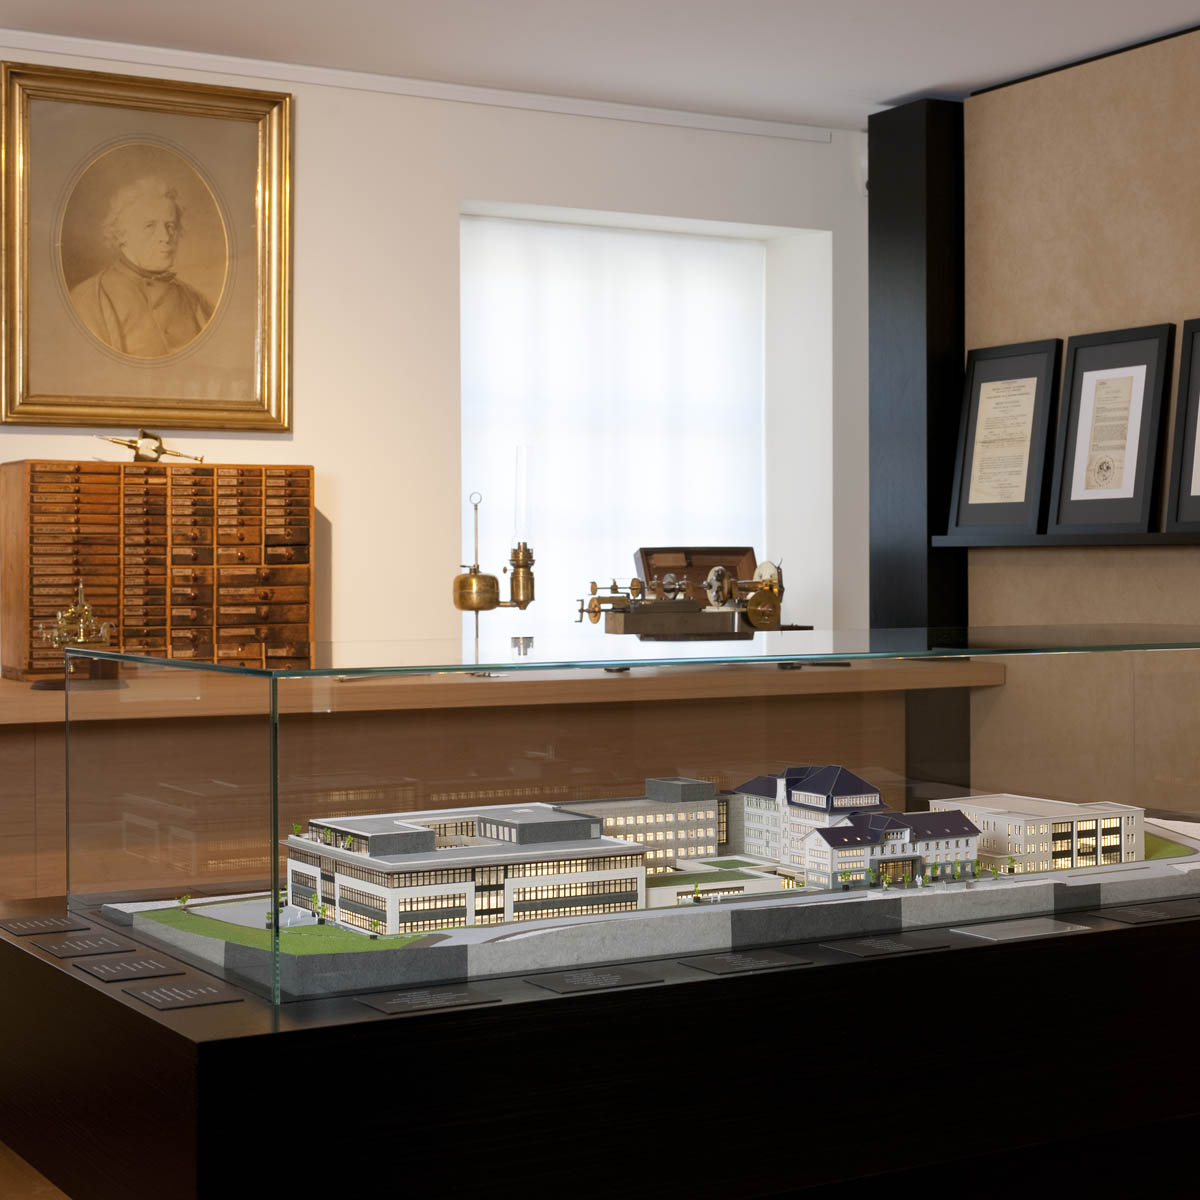 The Watch Quote: Photo - Jaeger-LeCoultre Heritage Gallery - 2012-2013 exhibition